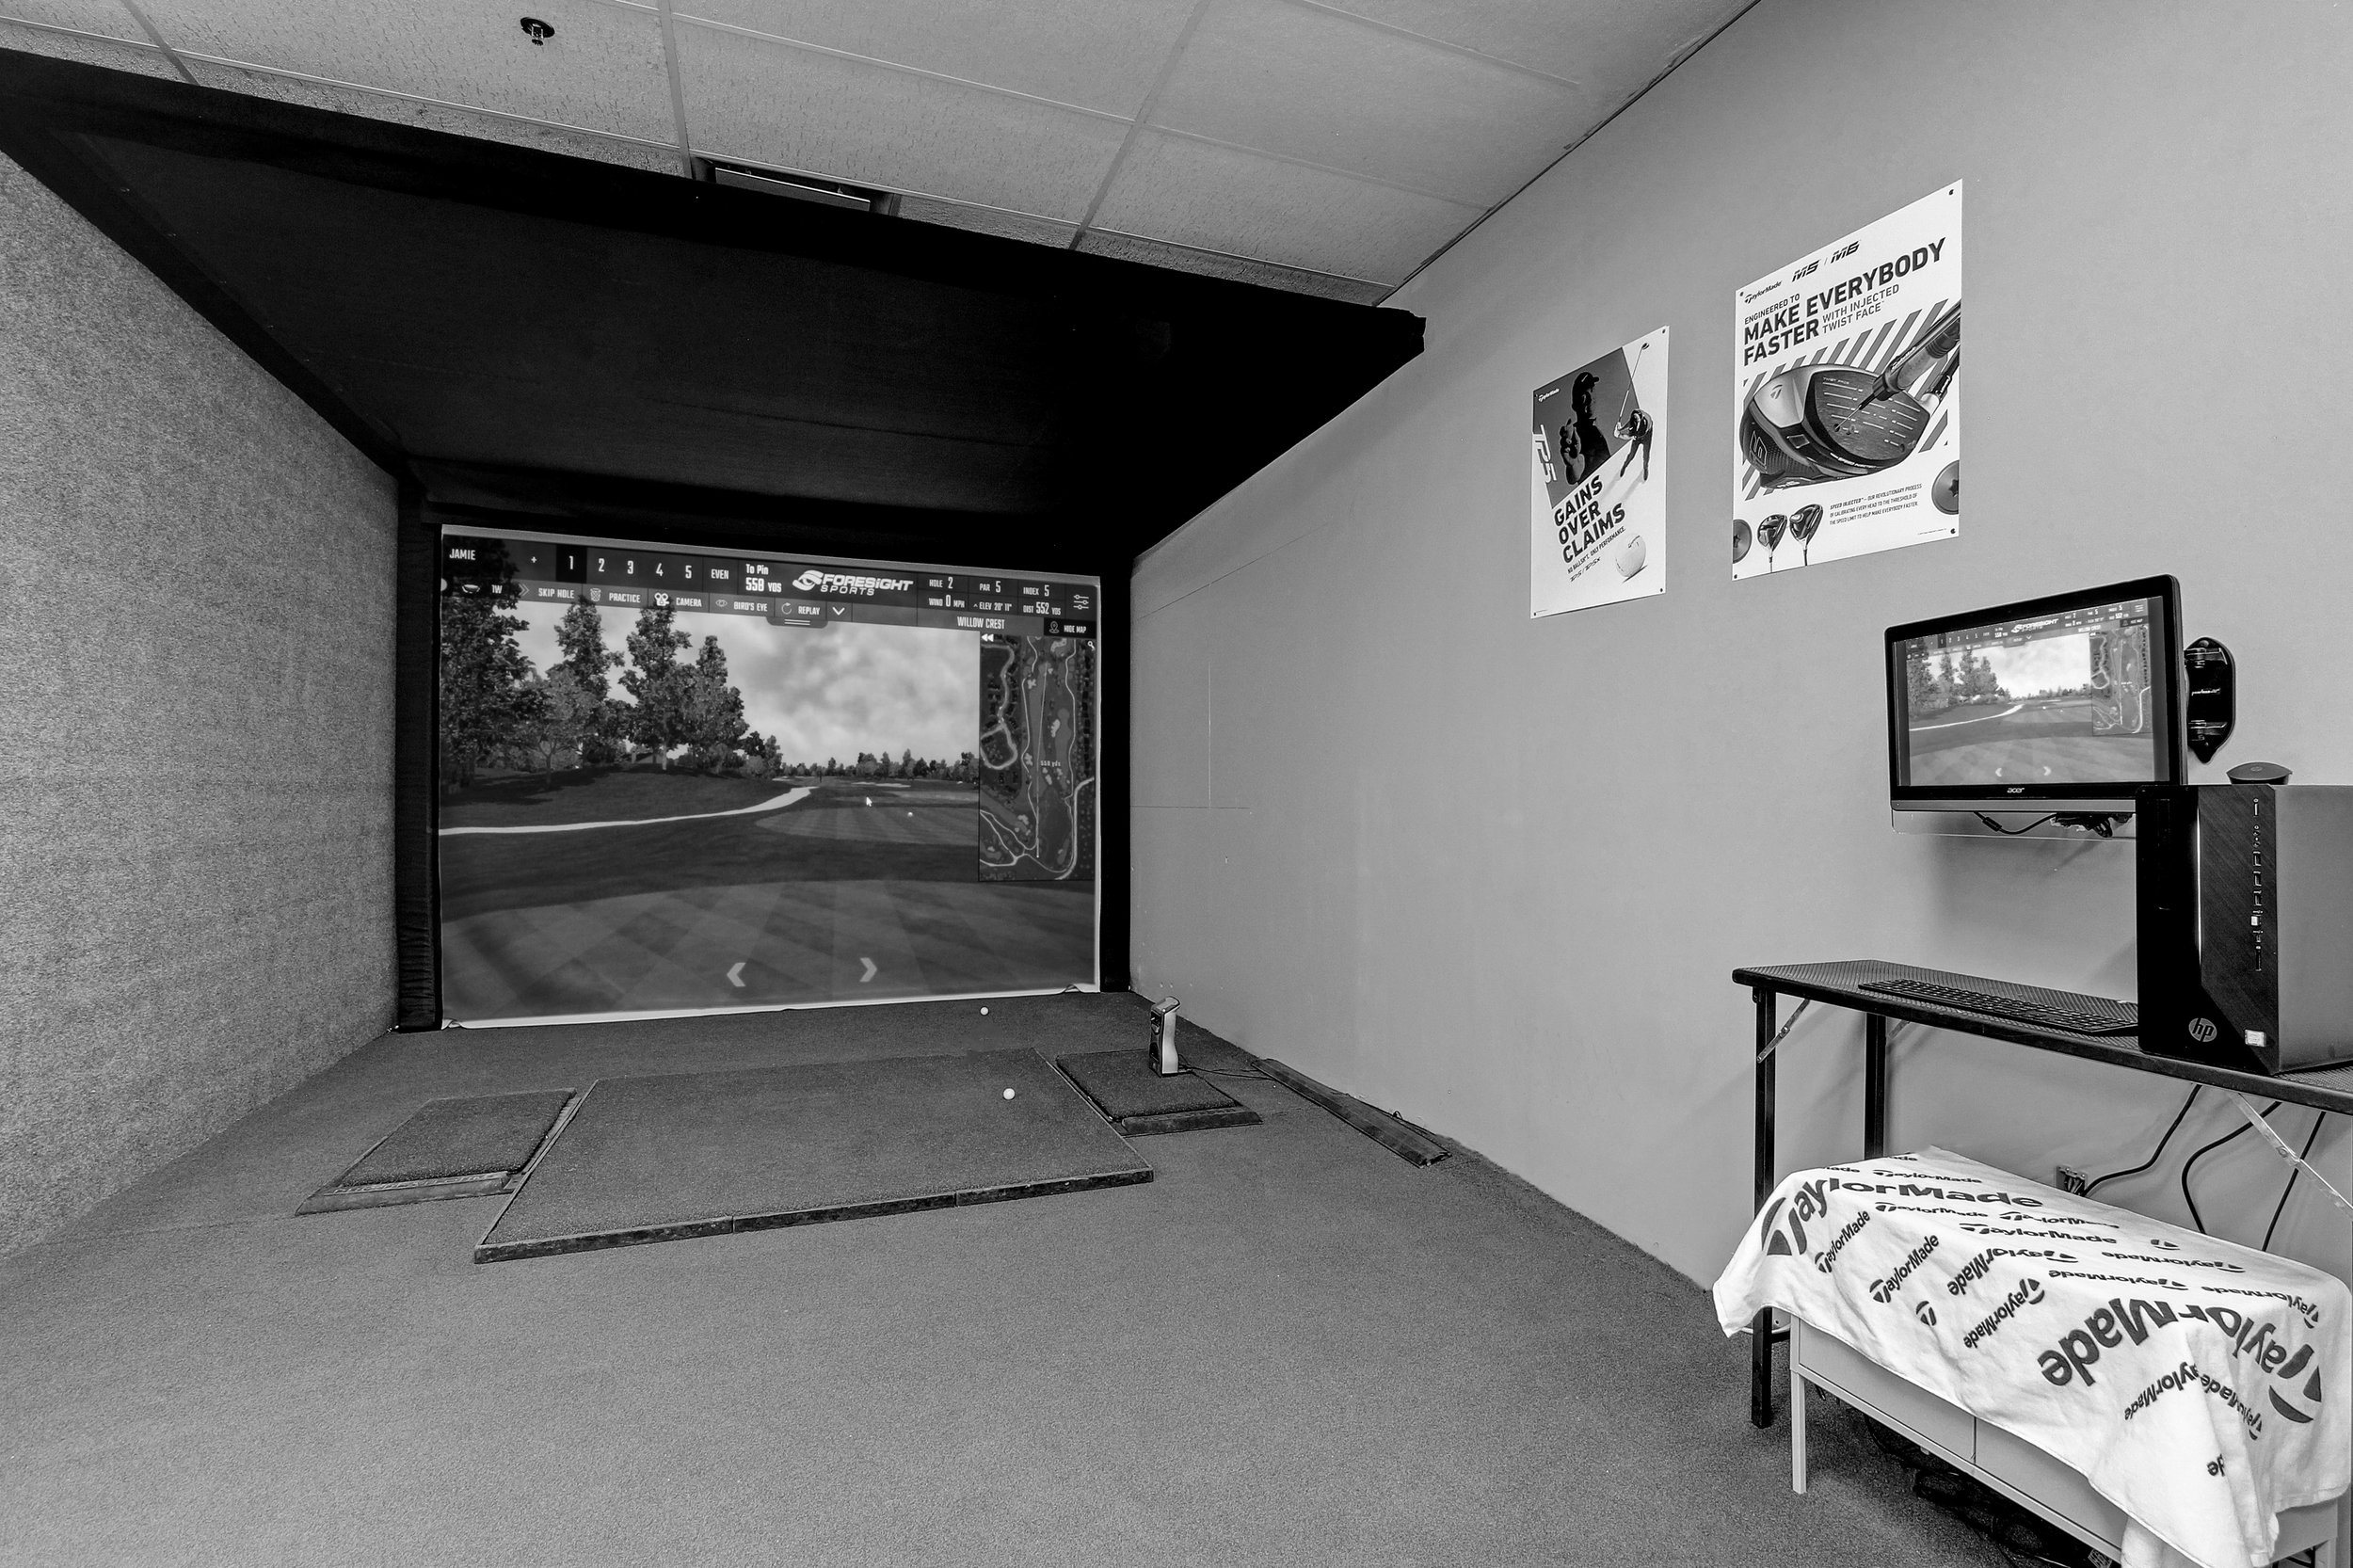 Foresight GC Hawk Simulation Bay - The GC Hawk Simulator is an overhead-mounted launch monitor that delivers an elite gaming experience. It is equipped with a Full projector hitting screen for enhanced realism. Play golf on 5 beautiful but challenging courses and practice with advanced range and testing software.Book 18 holes with up to 4 people,Create your own league$40/hr (Roughly an Hour Per Person for 18 holes)Book Now→